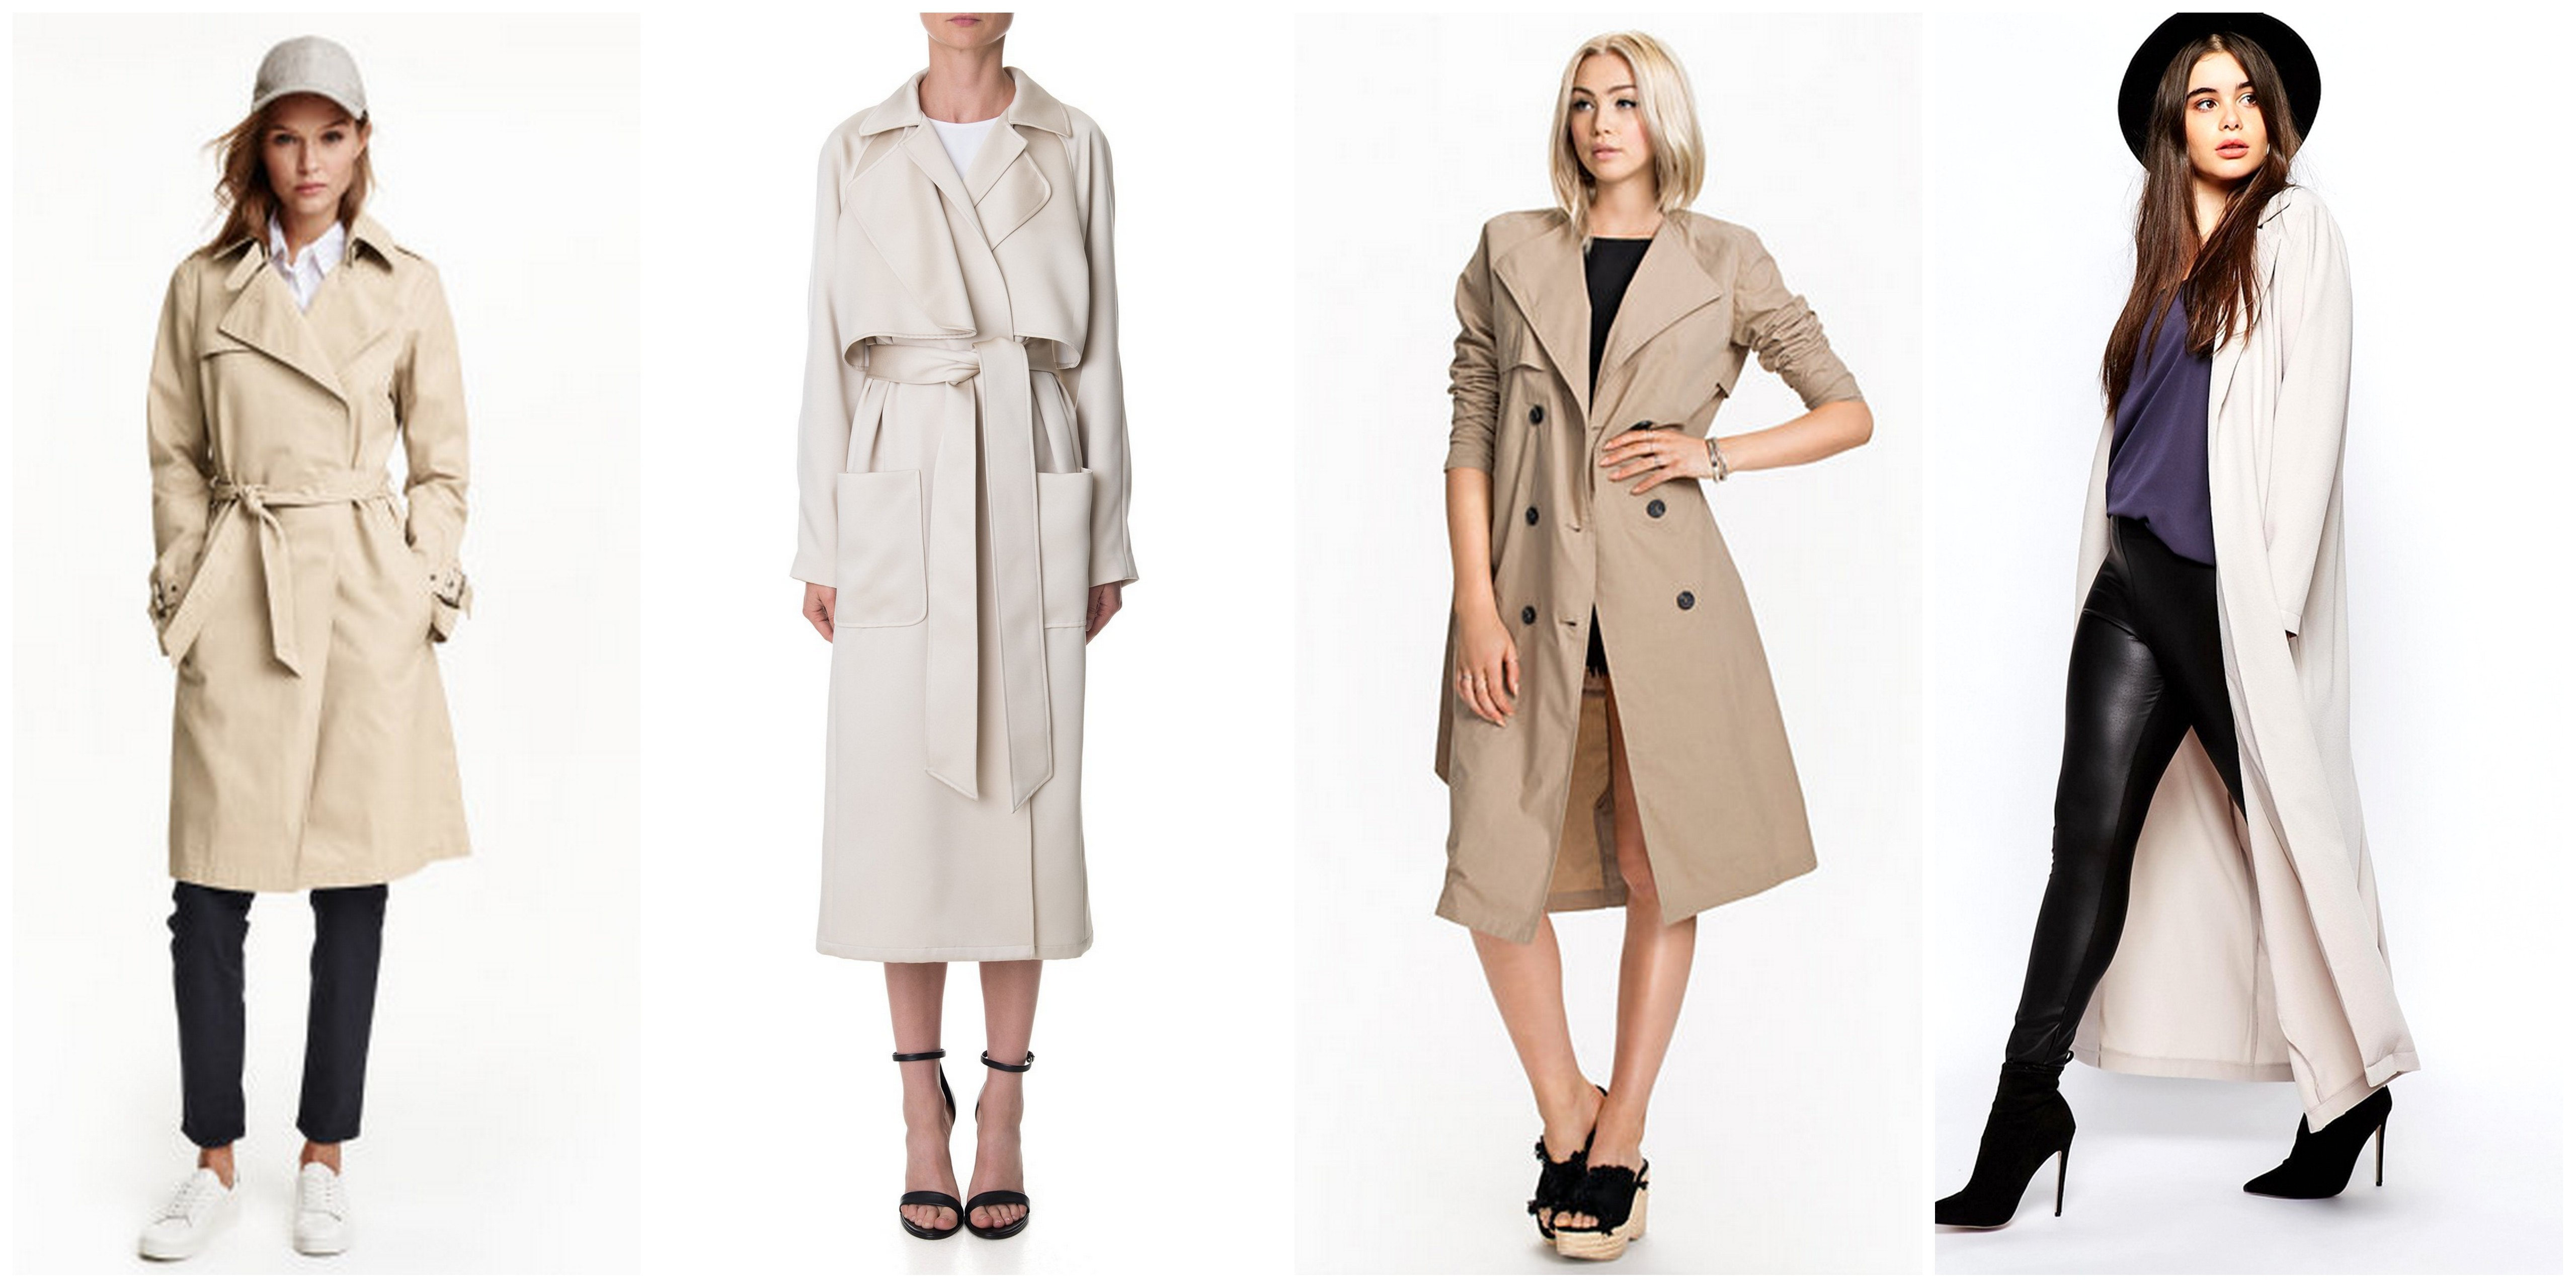 MUST HAVE FOR SPRING: BEIGE TRENCH COAT